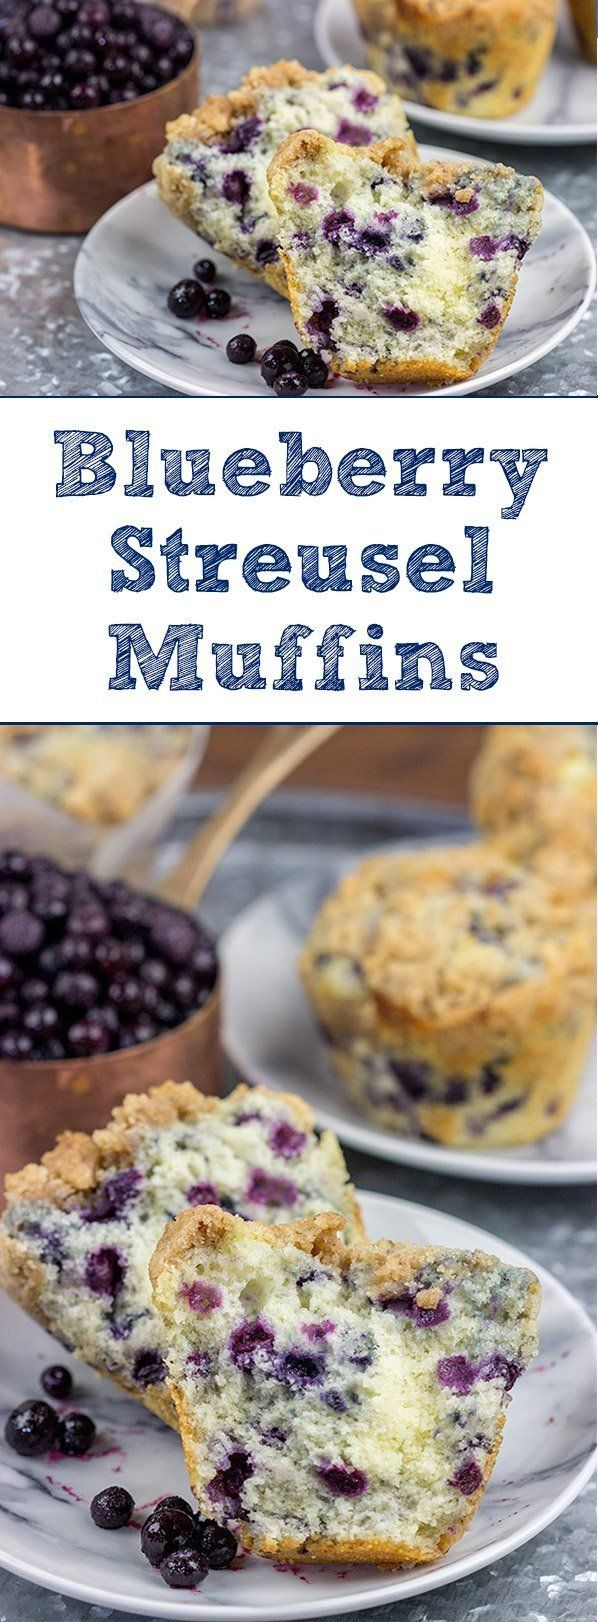 Blueberry Streusel Muffins Make These Bakery Style Muffins For Breakfast Recipe Blueberry Streusel Muffins Muffin Streusel Bakery Style Muffins